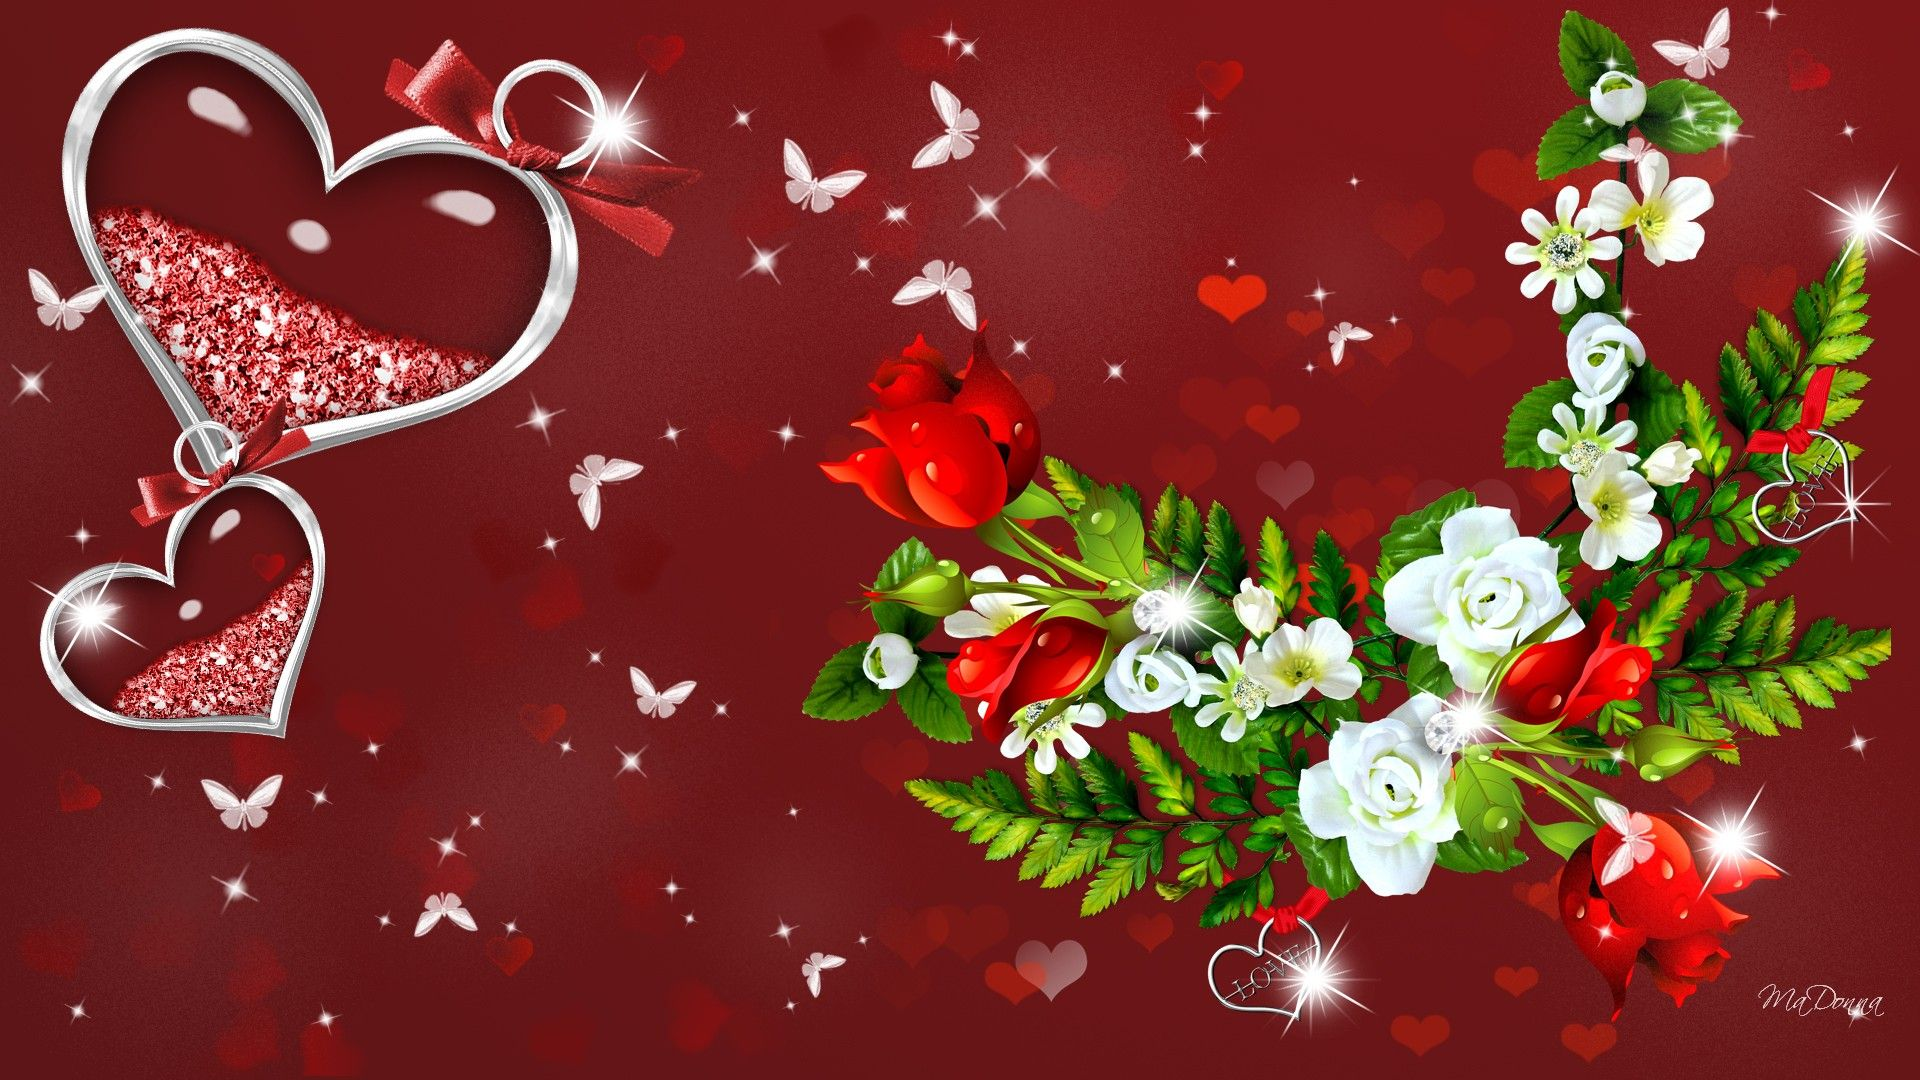 Valentine roses wallpaper Clicktop9 HD Wallpaper And